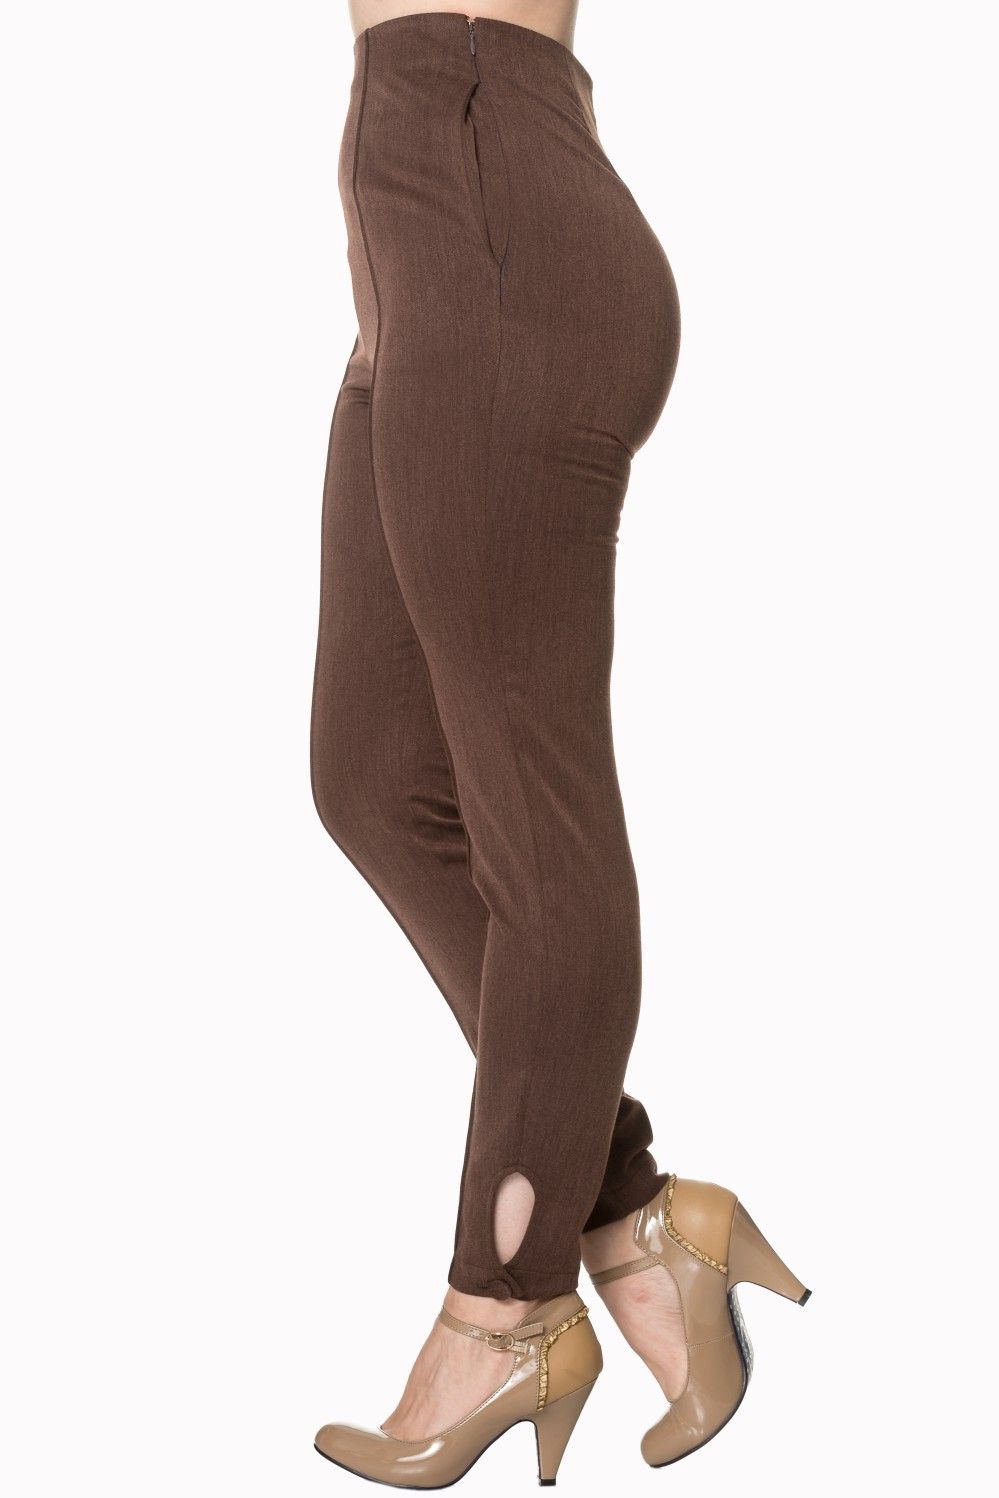 Banned Retro Tempting Fate Brown 50s Trousers